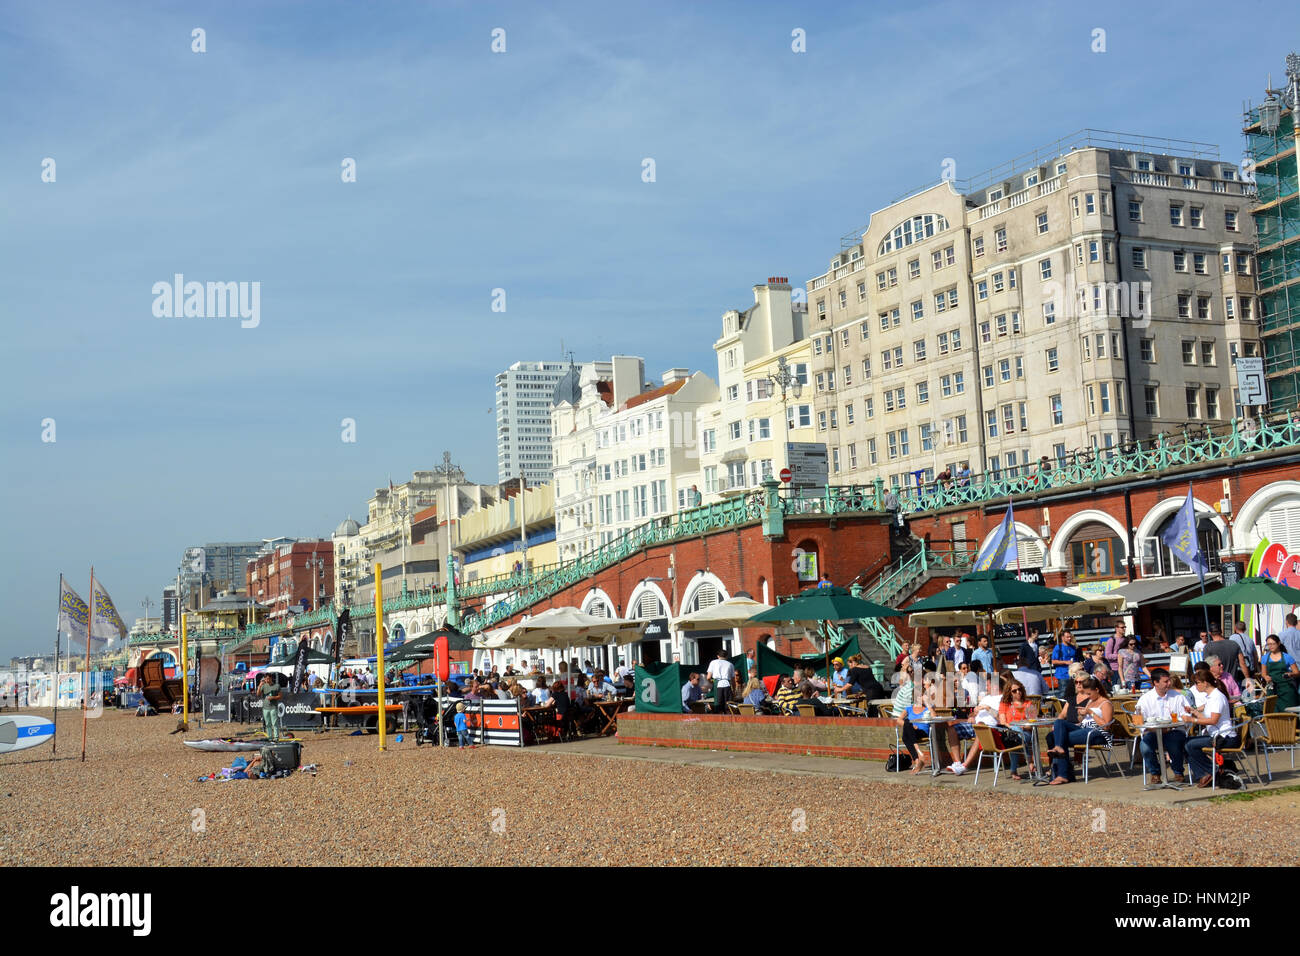 Brighton, United Kingdom - September 28, 2014: A busy lunchtime crowd on a summer day at the restaurants on Brighton - Stock Image